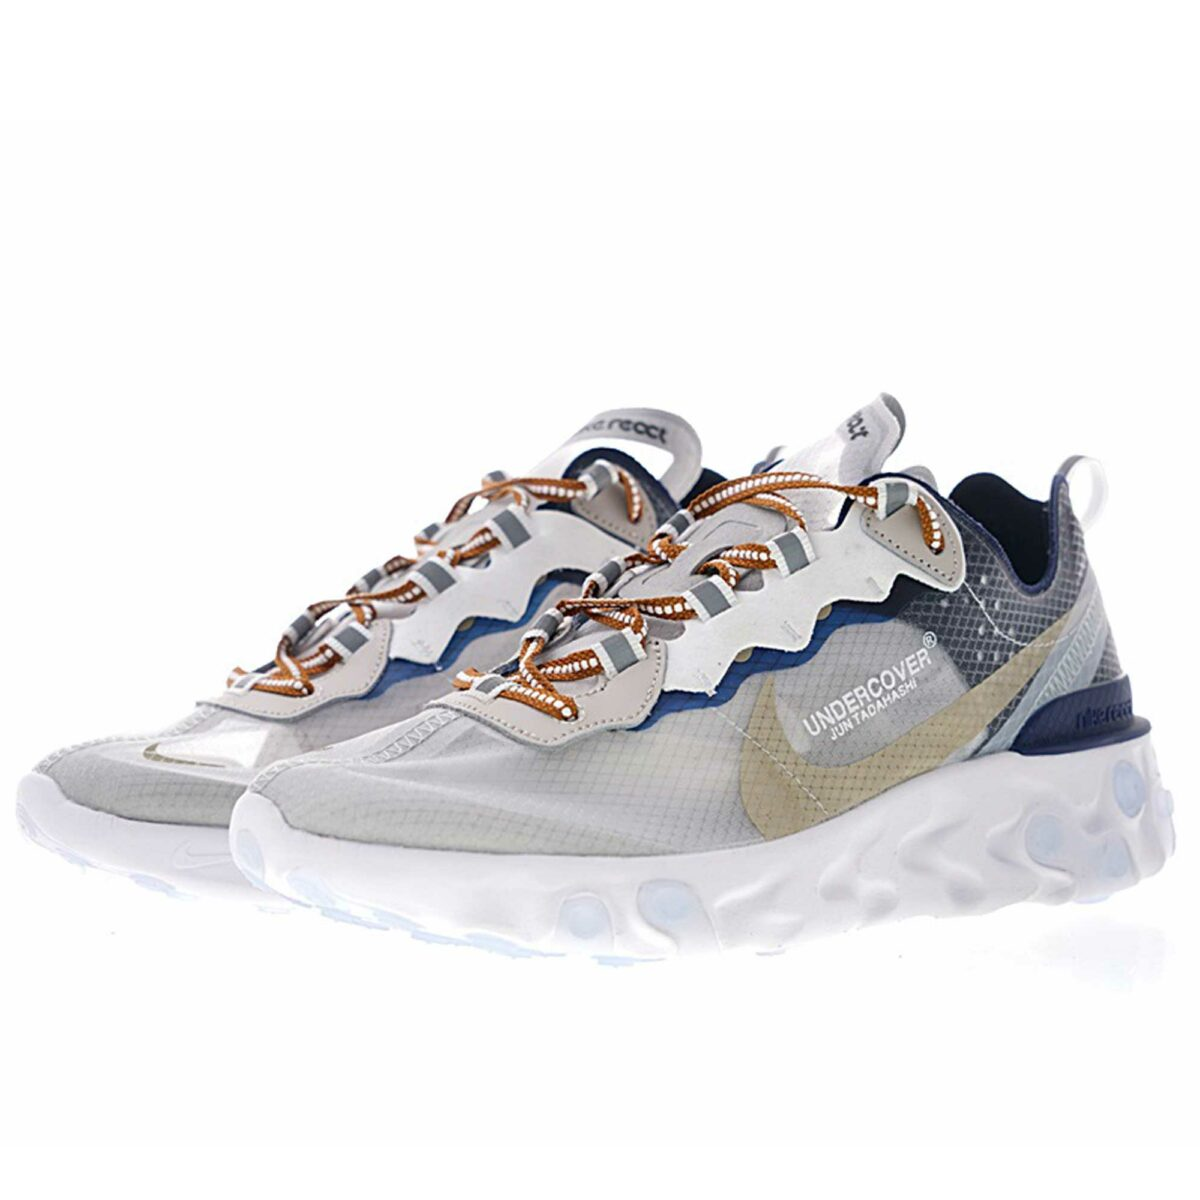 undercover x nike react element 87 white blue aq1813_343 купить